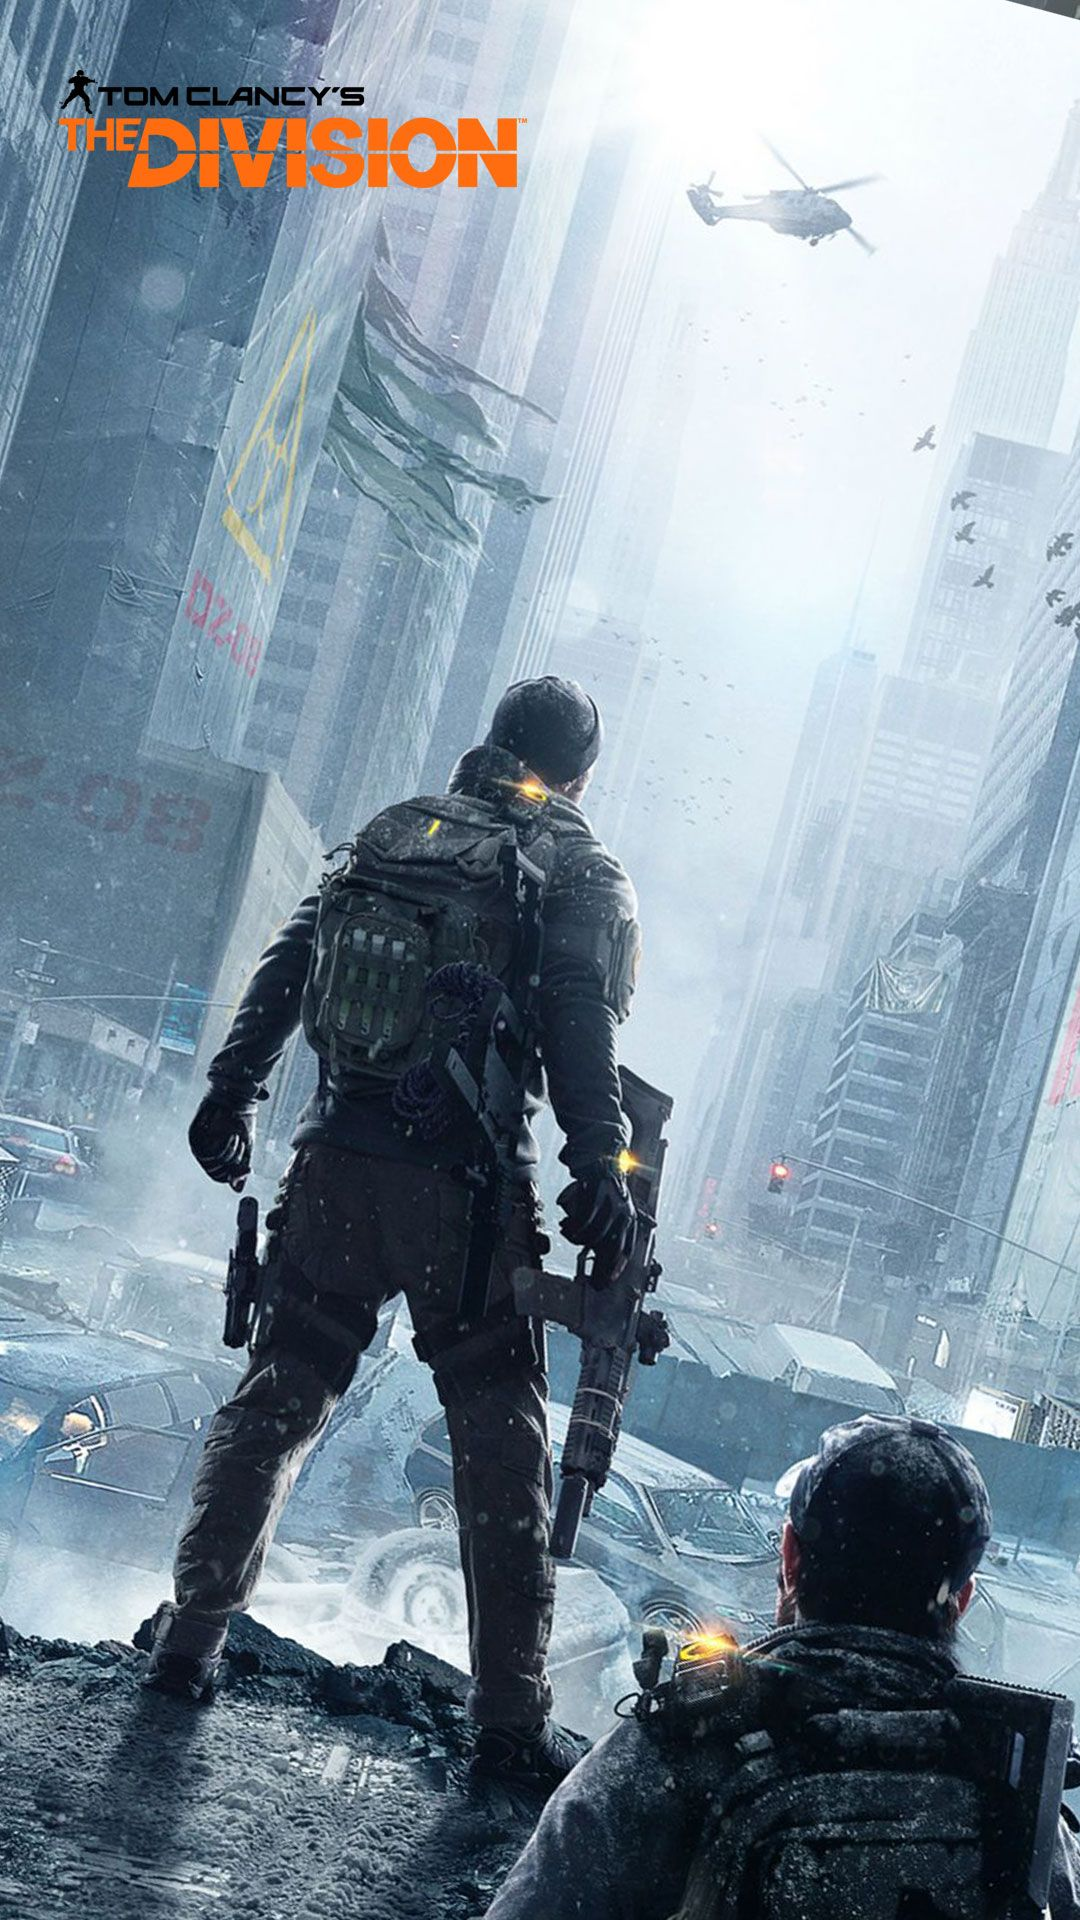 The Division Wallpaper Iphone Posted By Michelle Tremblay